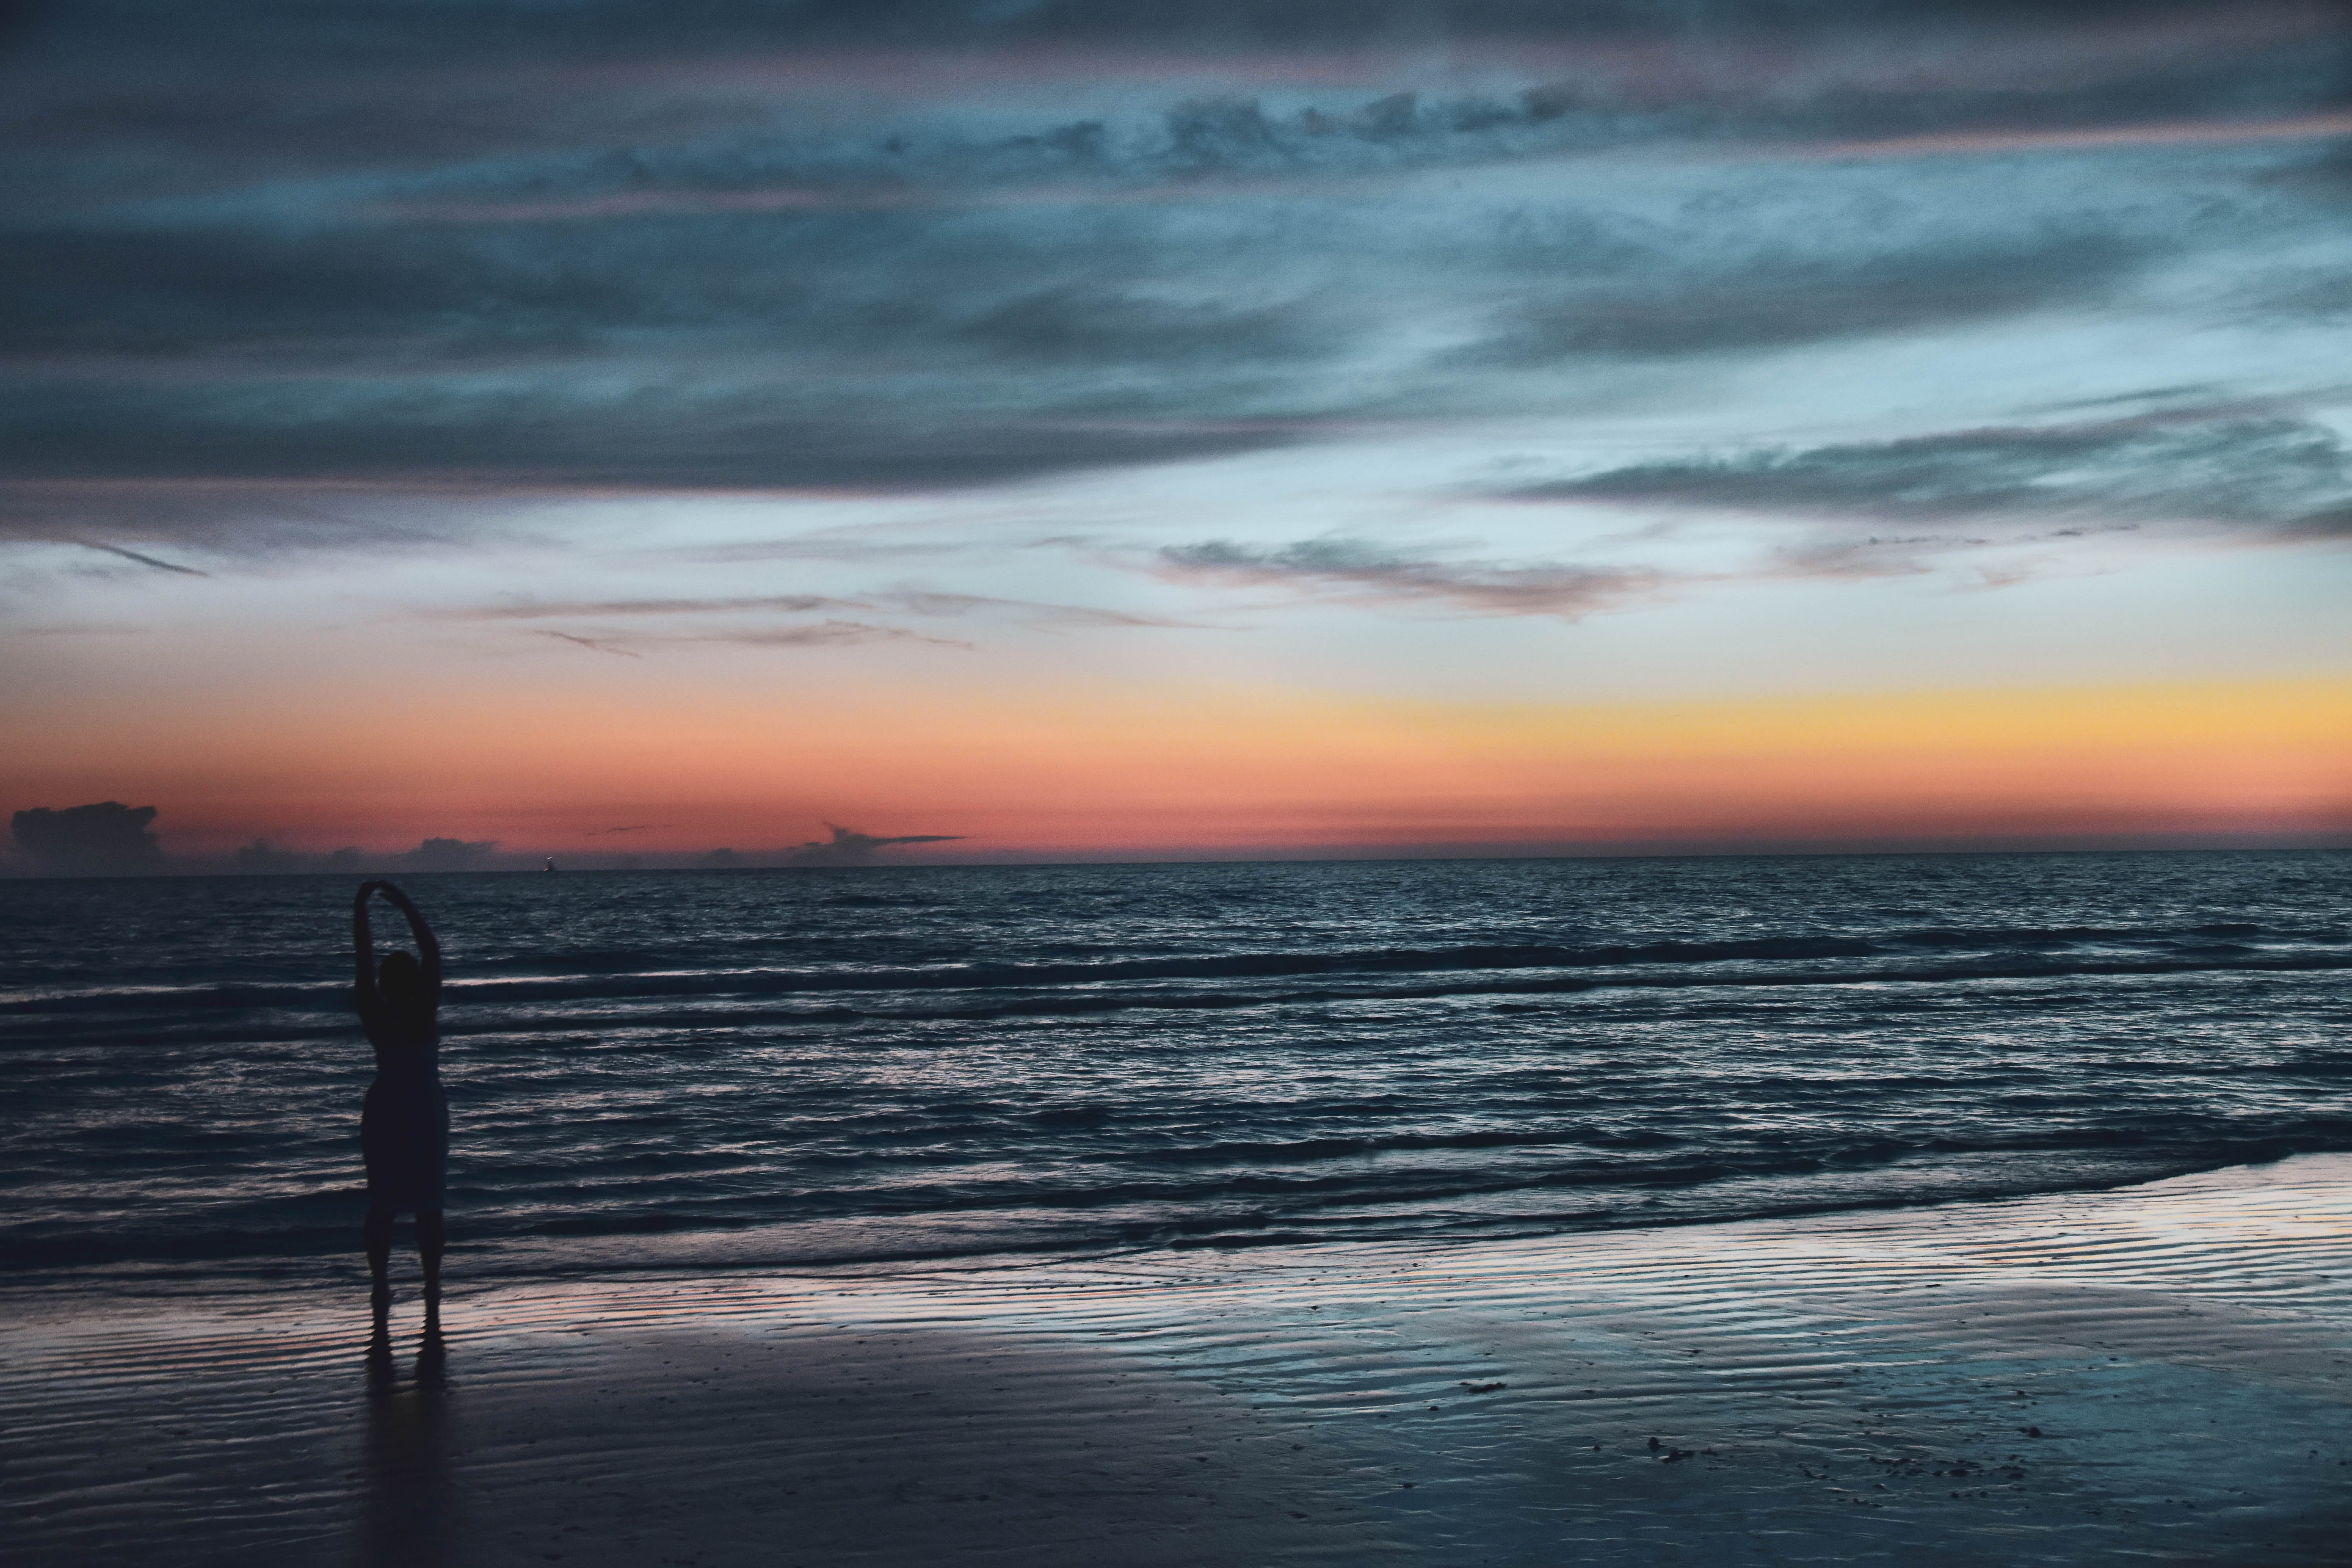 Silhouette of Person on Seashore during Golden Hour